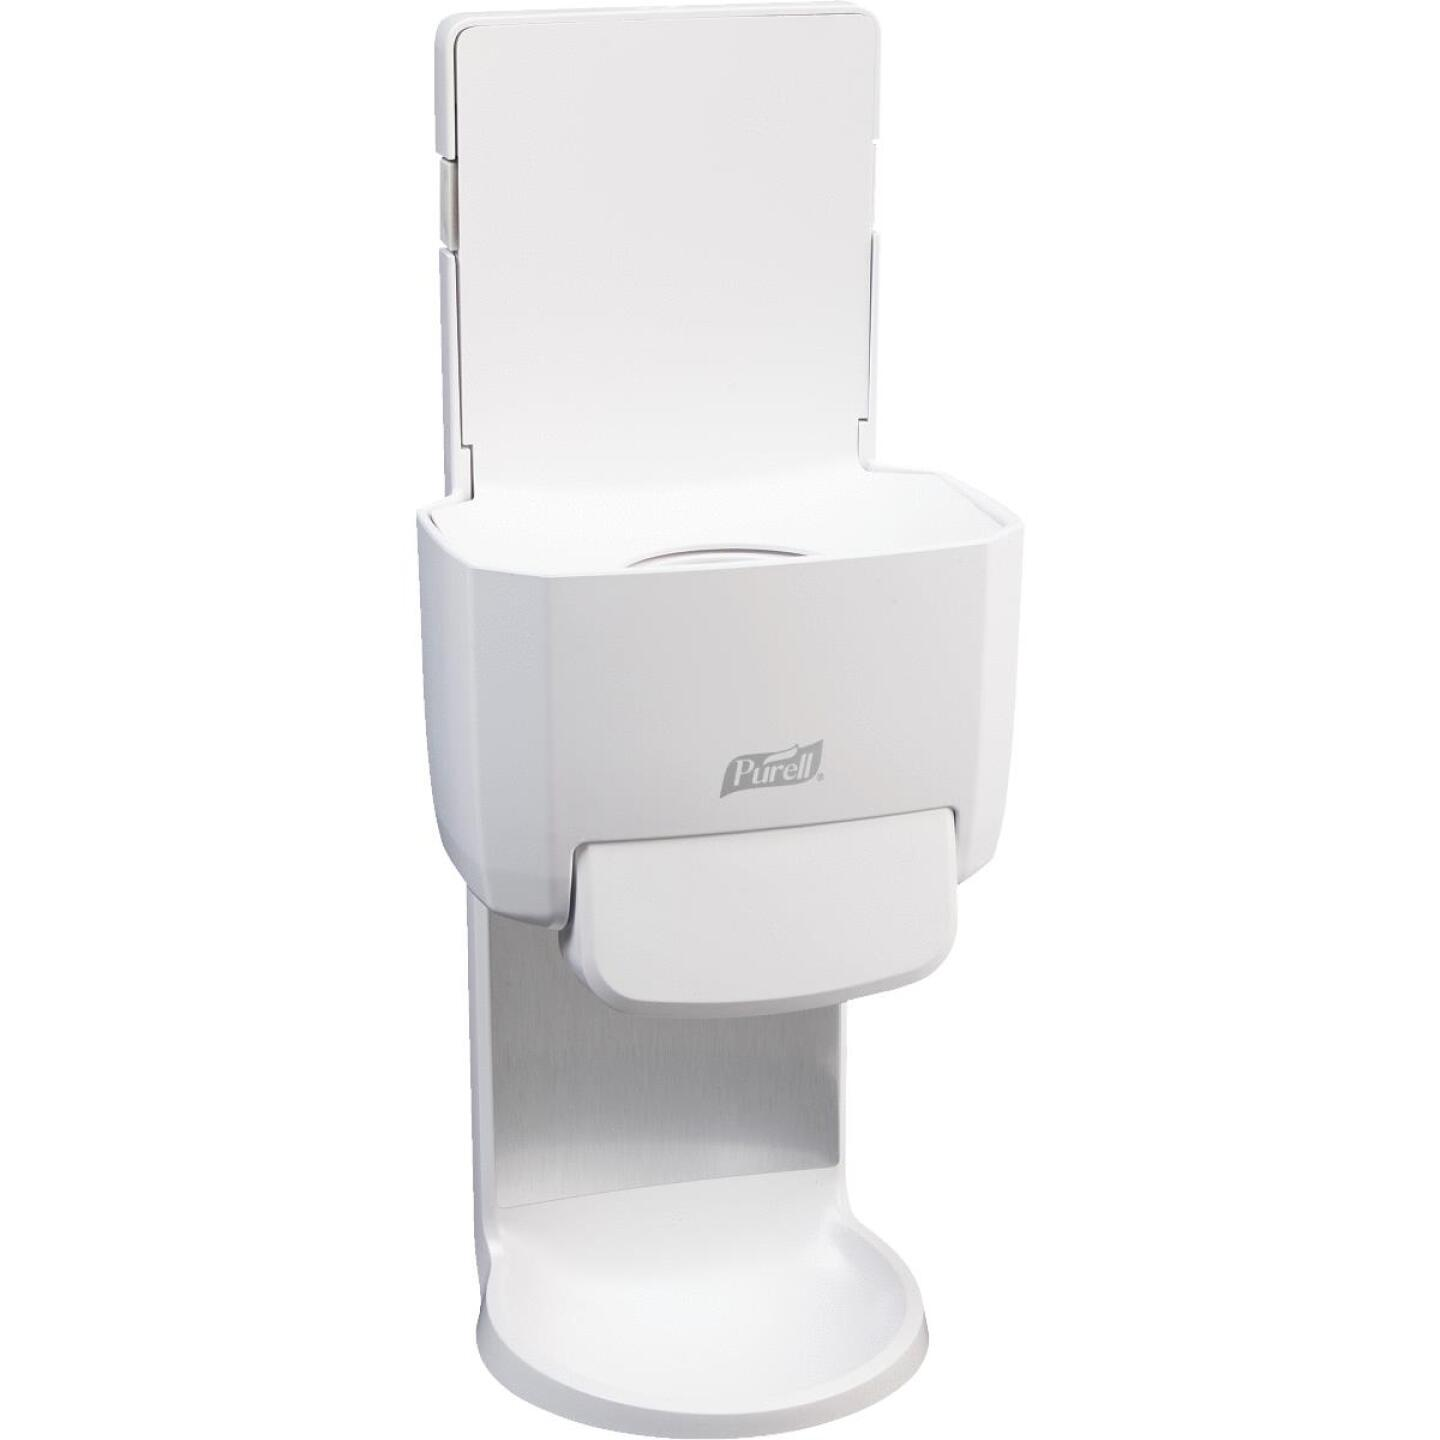 Purell Push-Style 1200 mL ES4 Hand Sanitizer Dispenser Image 1